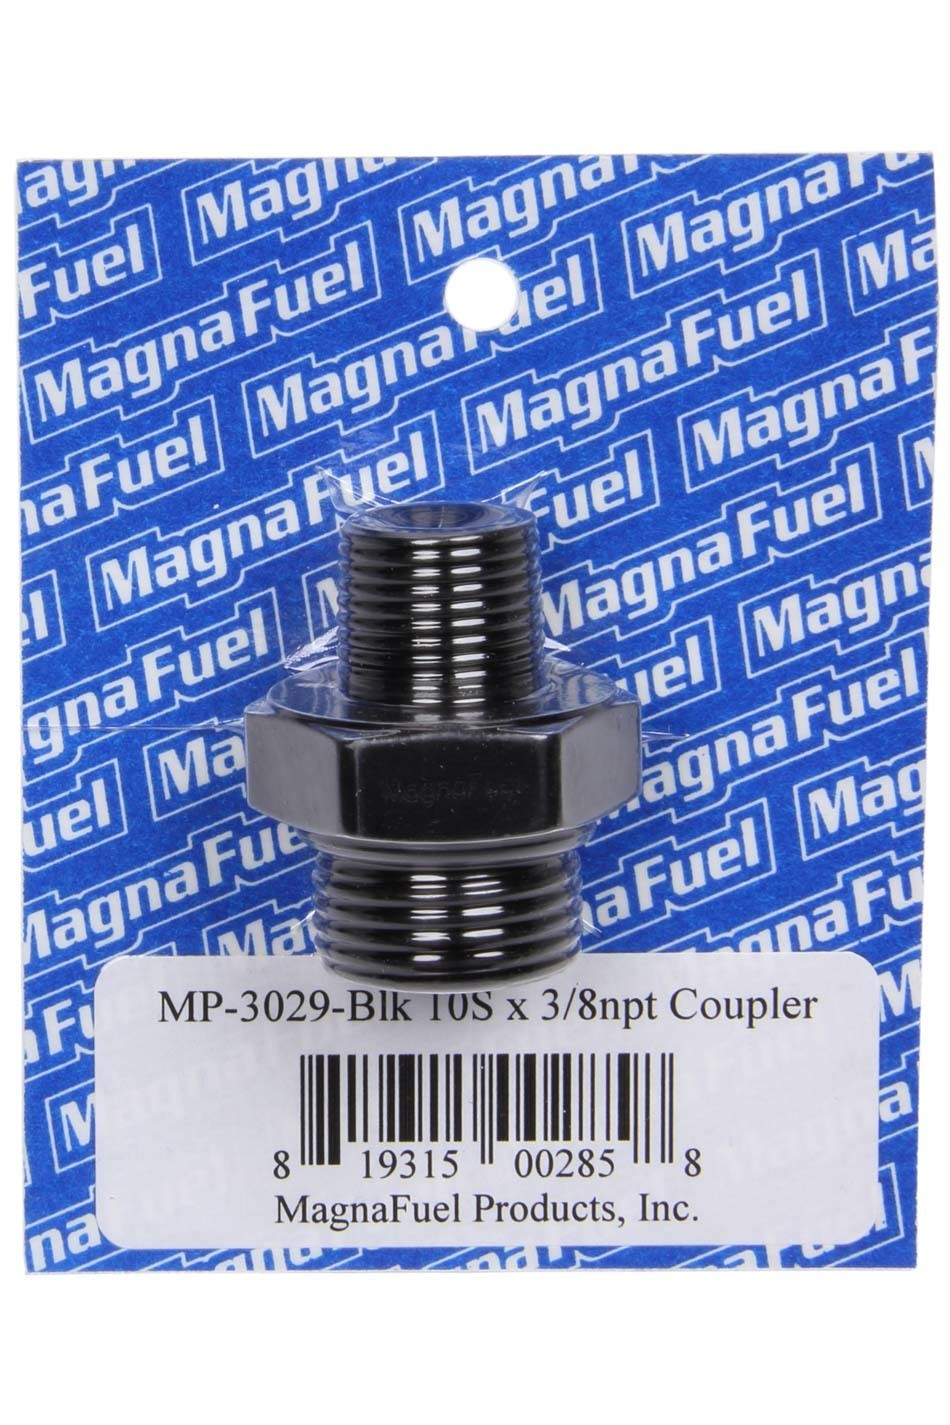 Magnafuel MP-3029-BLK Fitting, Adapter, Straight, 10 AN Male O-Ring to 3/8 in NPT Male, Aluminum, Black Anodize, Each